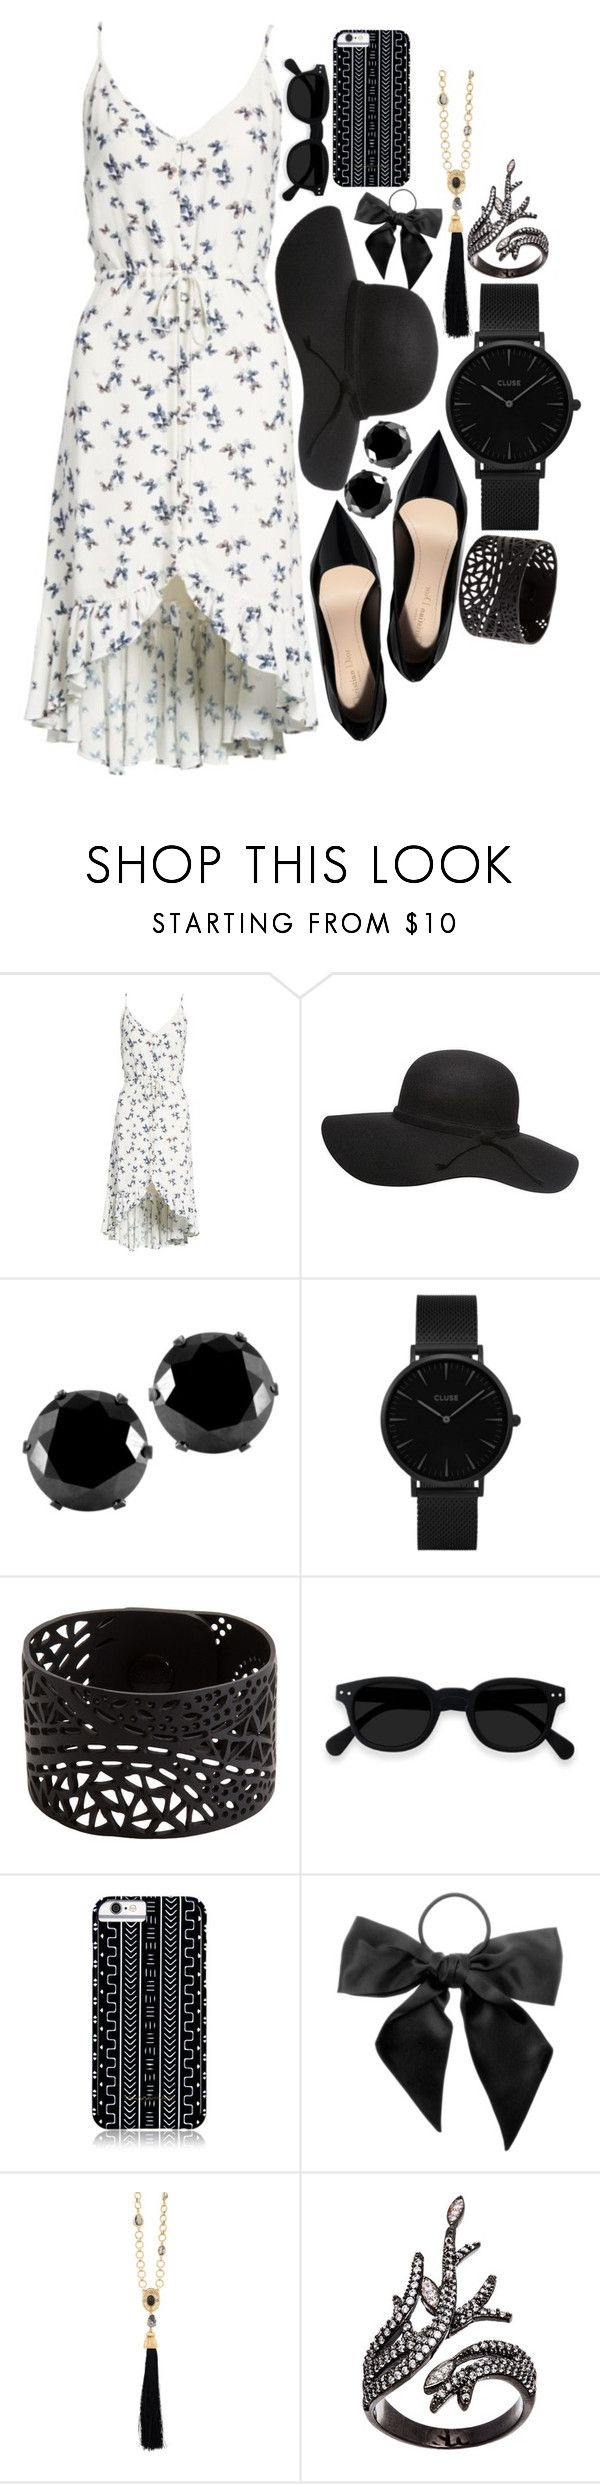 """Black Accessories - Throw and Go Dresses"" by corinned09 ❤ liked on Polyvore featuring Rails, West Coast Jewelry, CLUSE, Savannah Hayes, L. Erickson, Oscar de la Renta and Lord & Taylor"